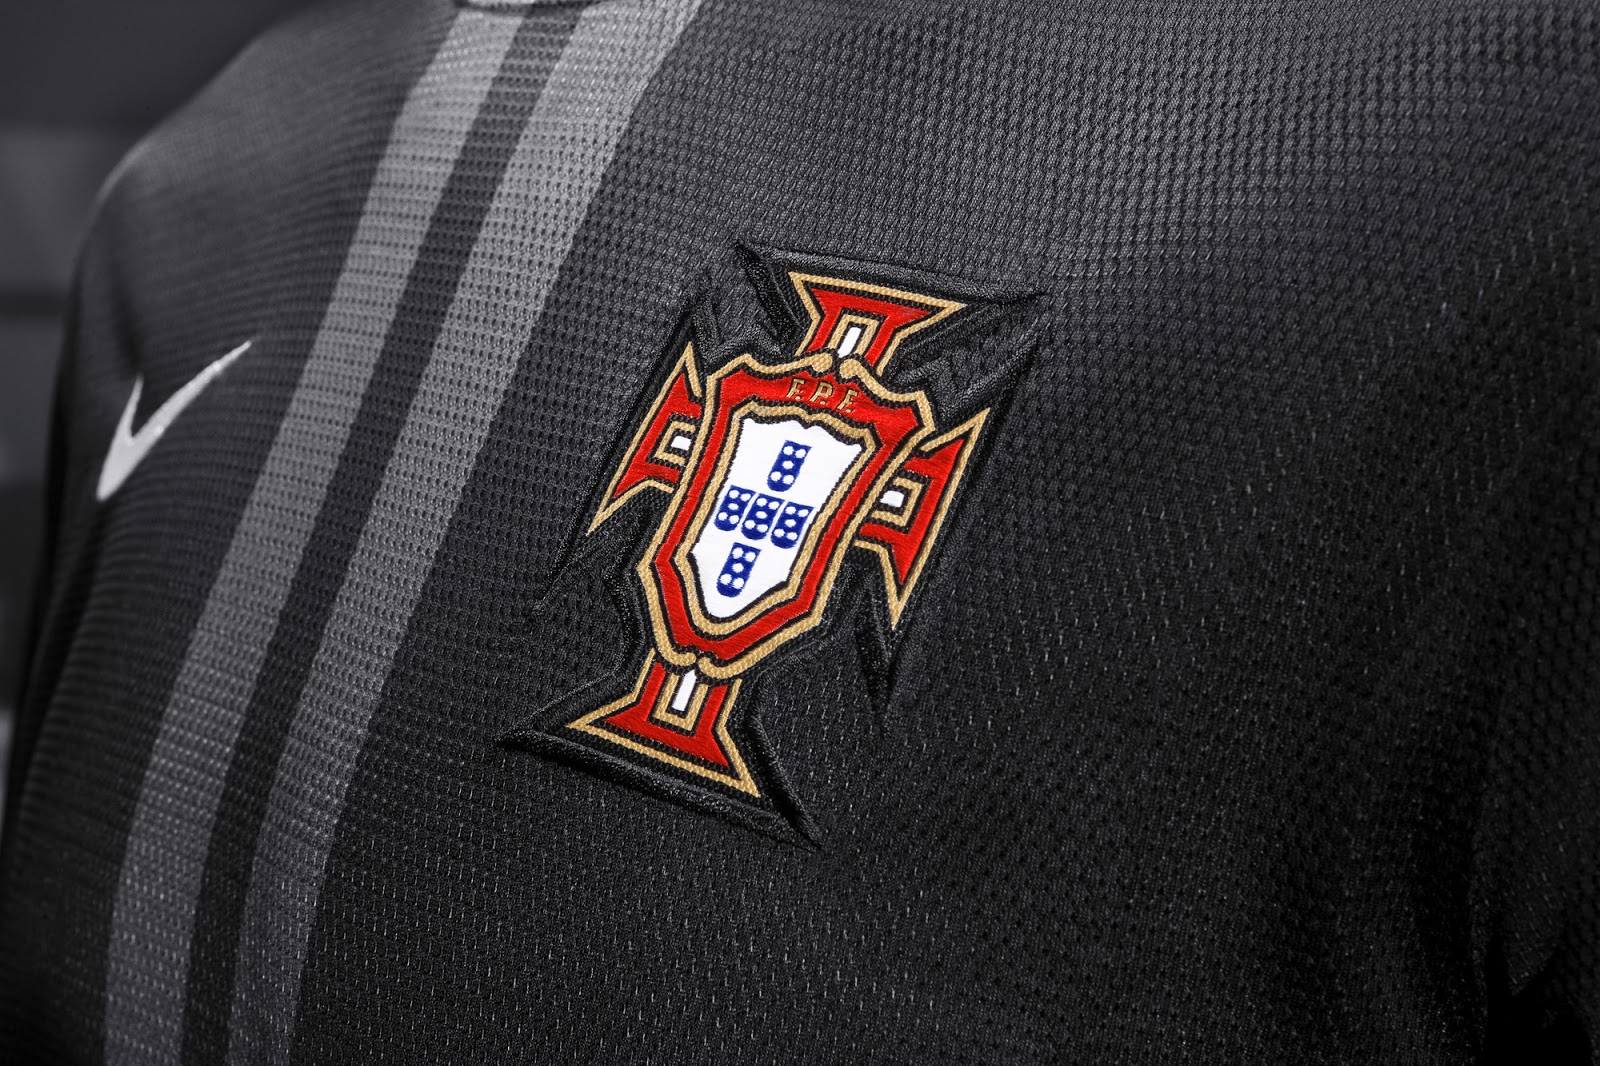 Wallpaper Real Madrid Hd Portugal 13 14 Nike Away Shirt Released Footy Headlines